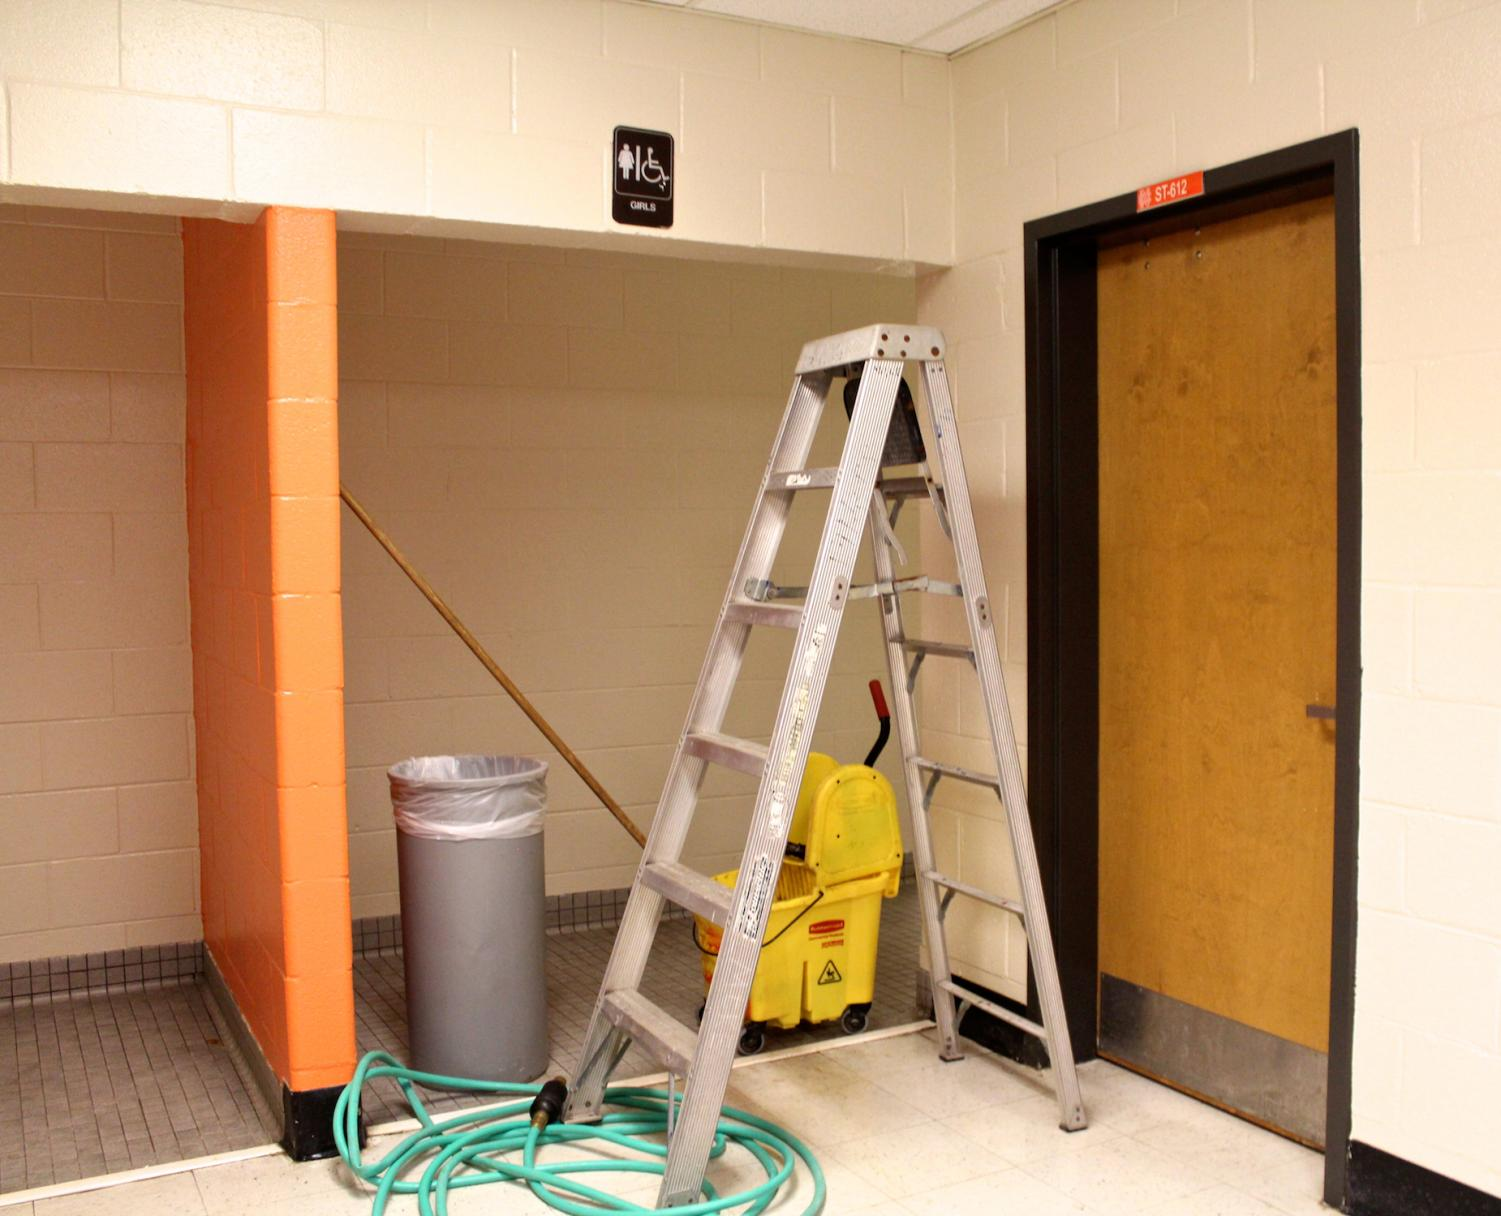 The custodians created a barricade outside of the girls' bathroom in the 600 hallway using a ladder, trash can, hose, mop, and bucket to stop people from coming inside. The restroom, currently closed for maintenance, will reopen shortly.